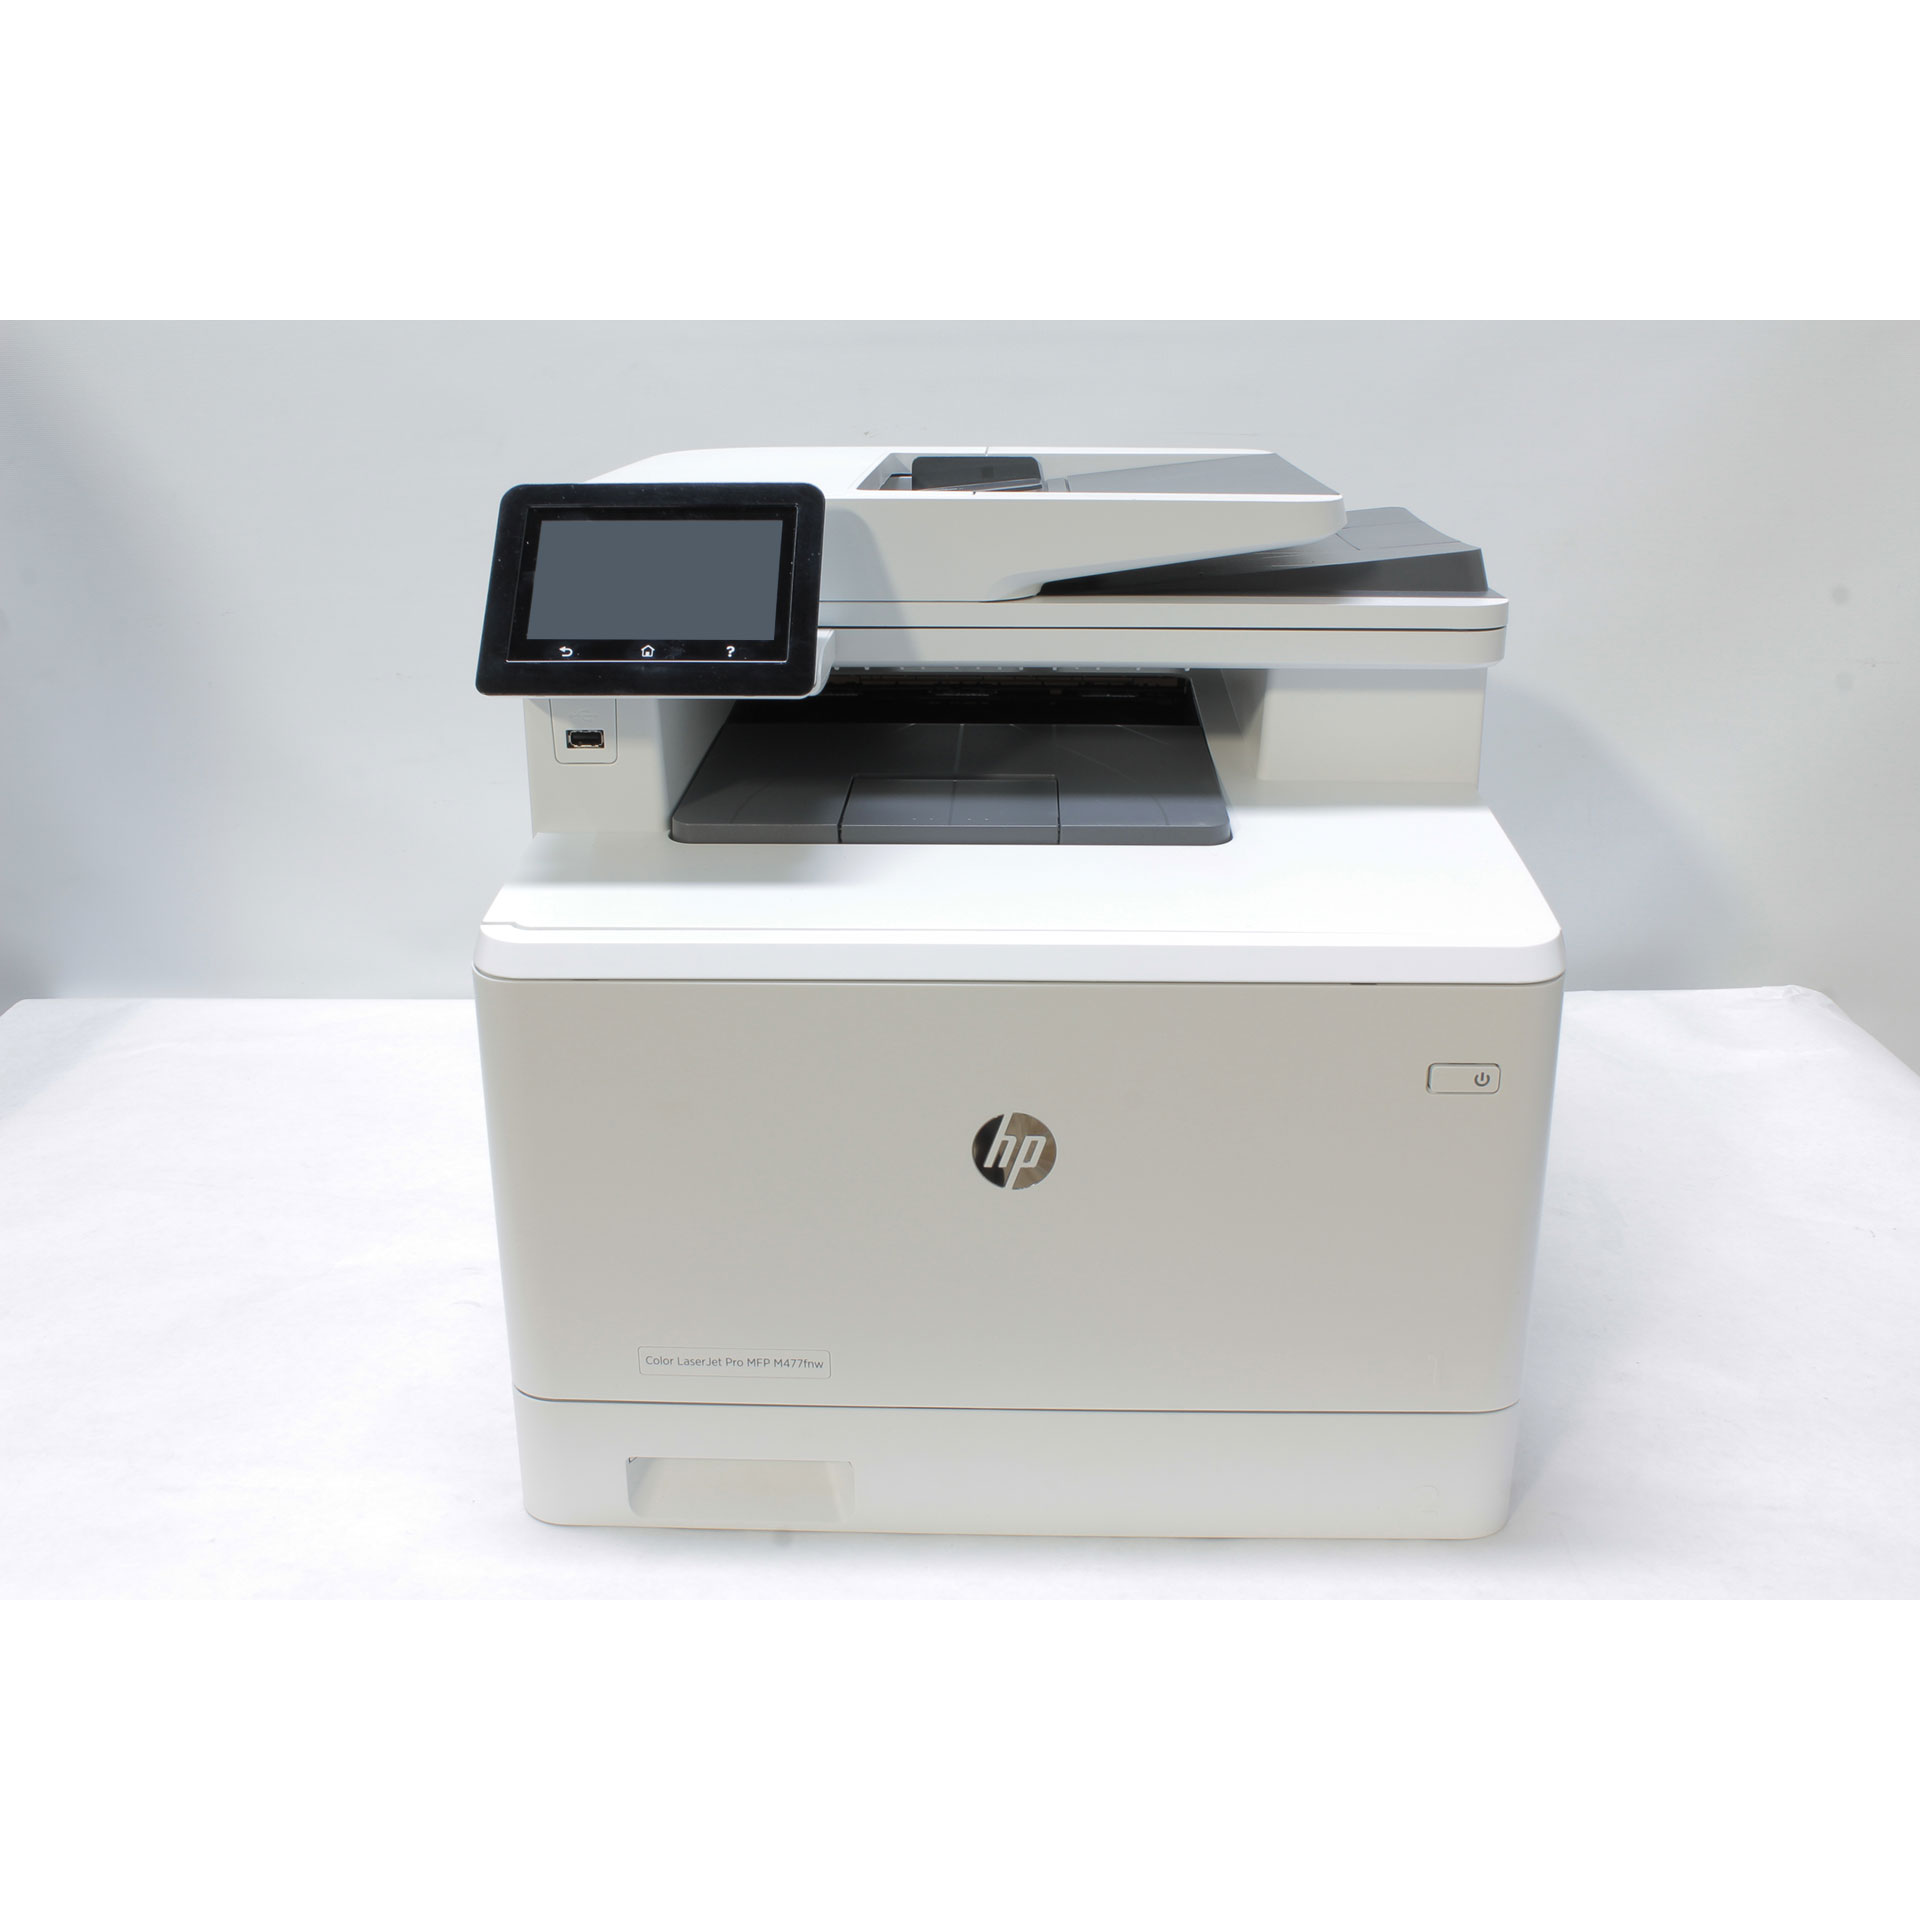 HP Color LaserJet Pro M477fnw All-In-One Laser Printer CF377A